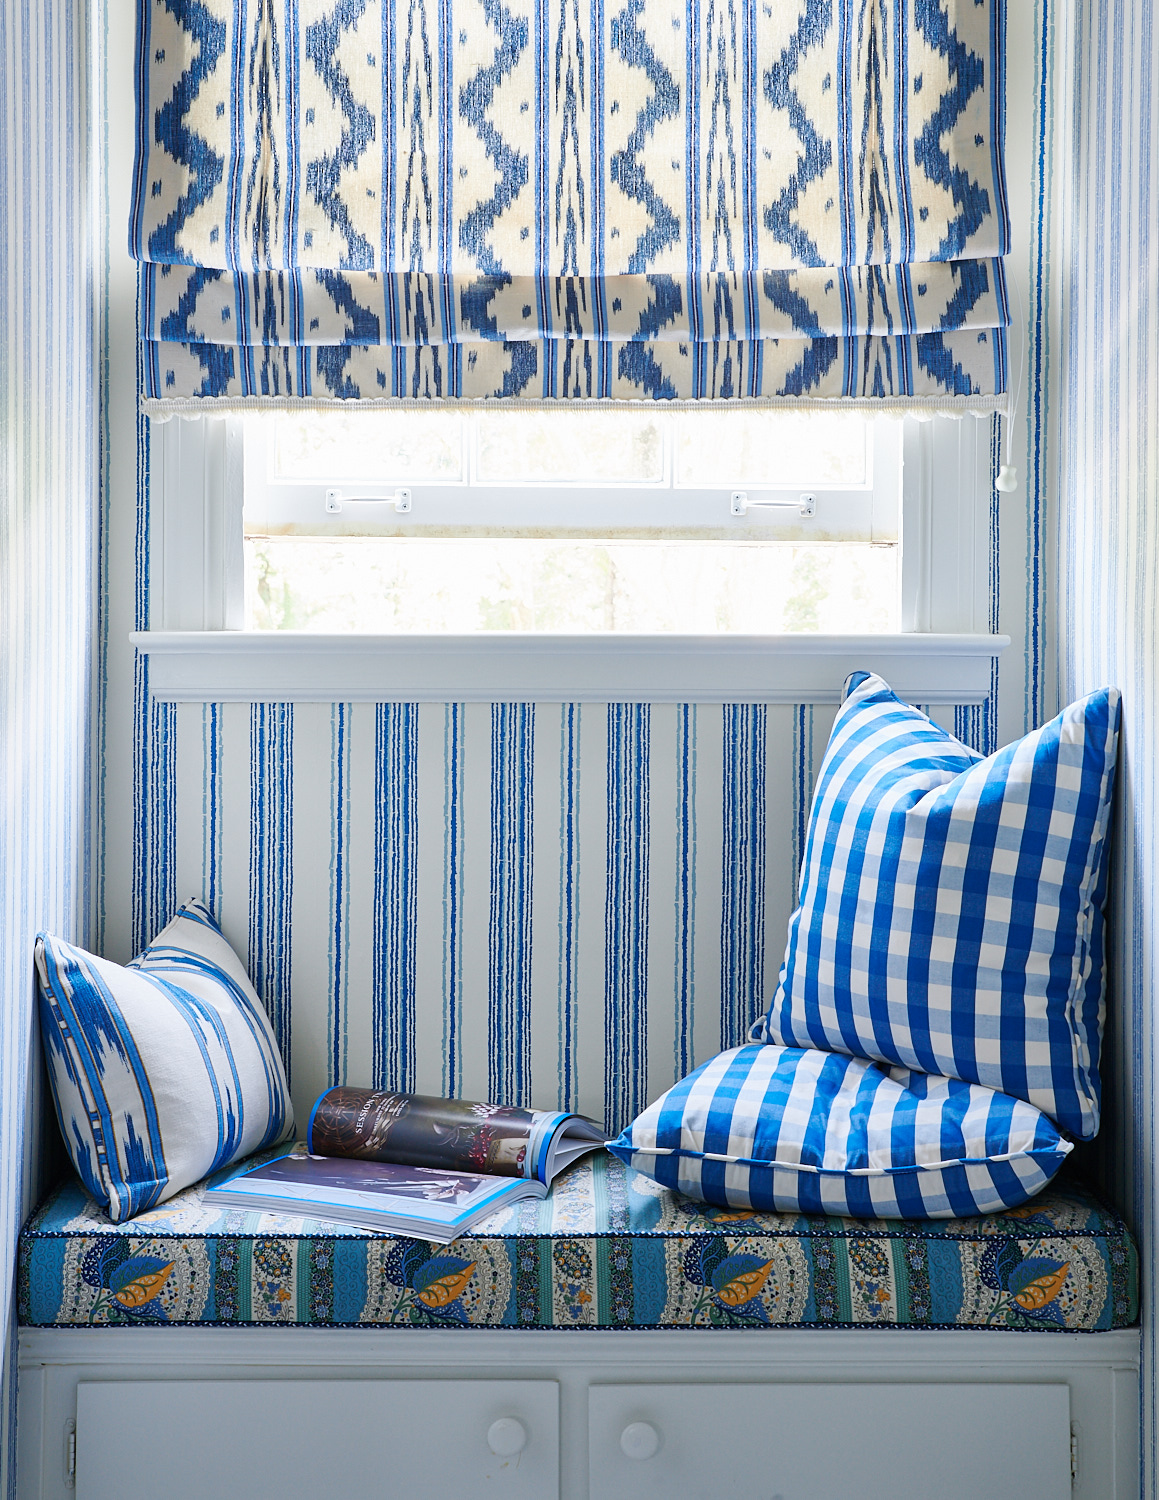 Bedroom roman shades, built-in bench with cushions, and custom throw pillows